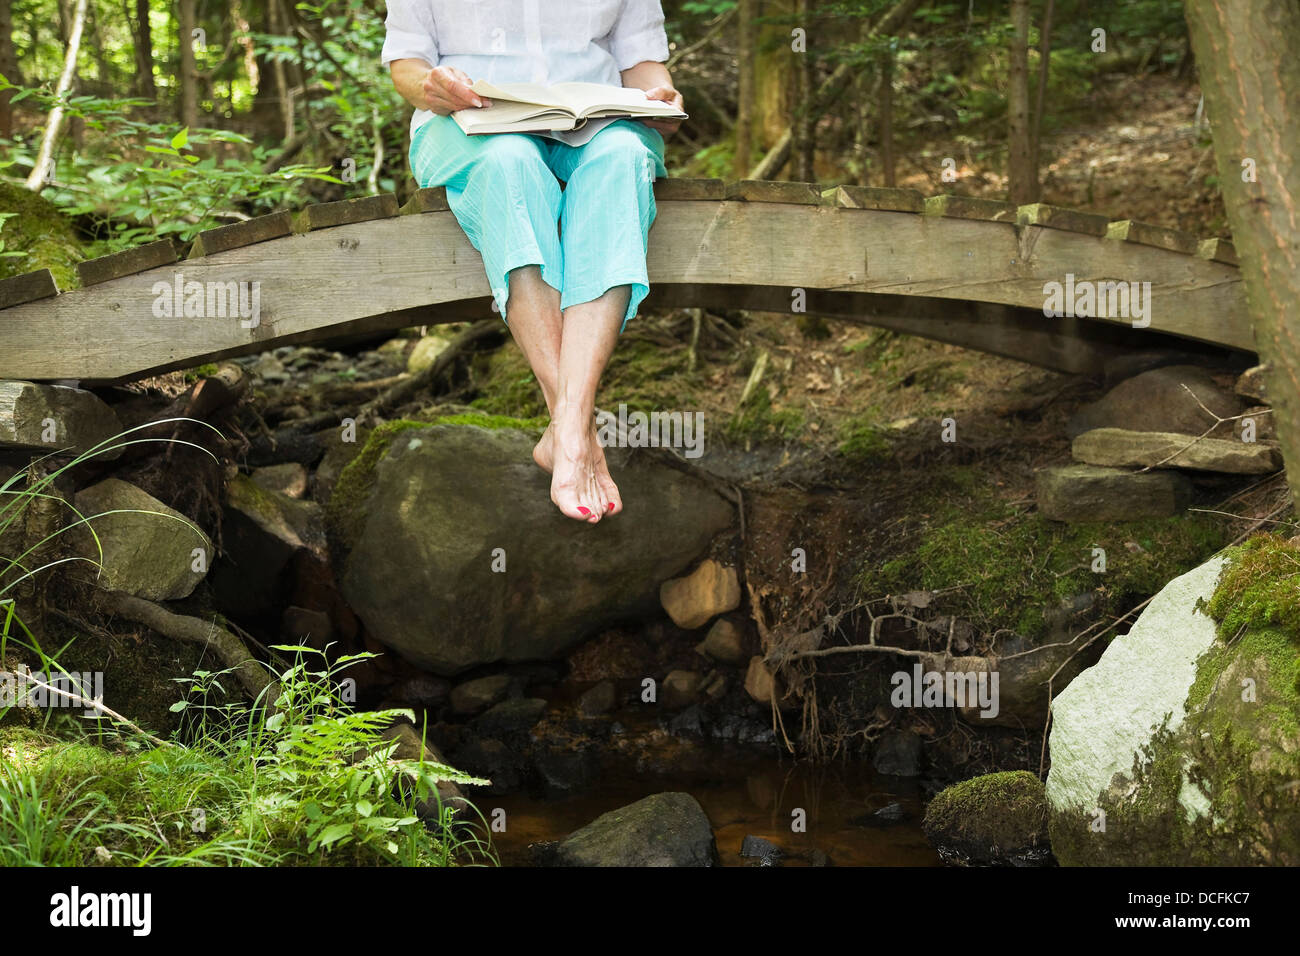 Woman Reading While Sitting On A Woodland Bridge, Algonquin Park, Ontario, Canada - Stock Image